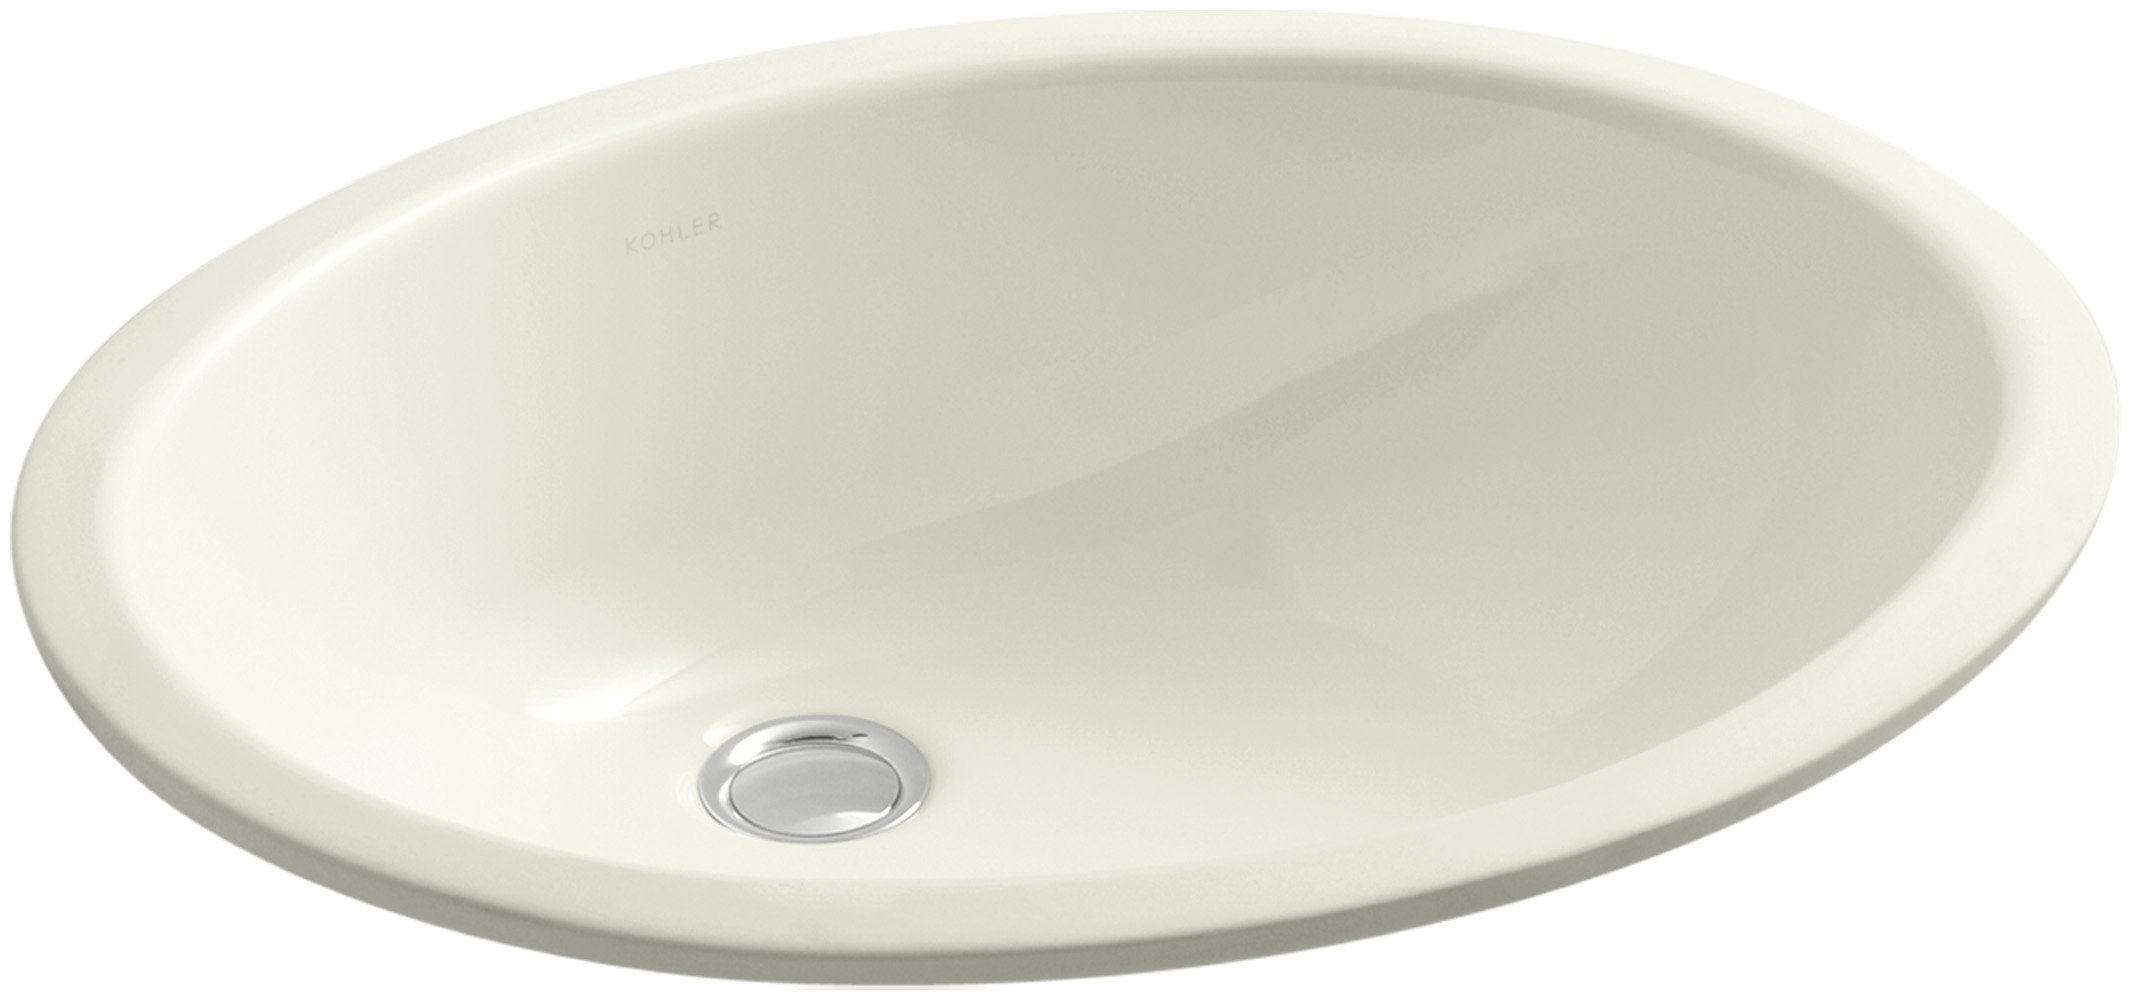 KOHLER K-2210-96 Caxton Undercounter Bathroom Sink, Biscuit